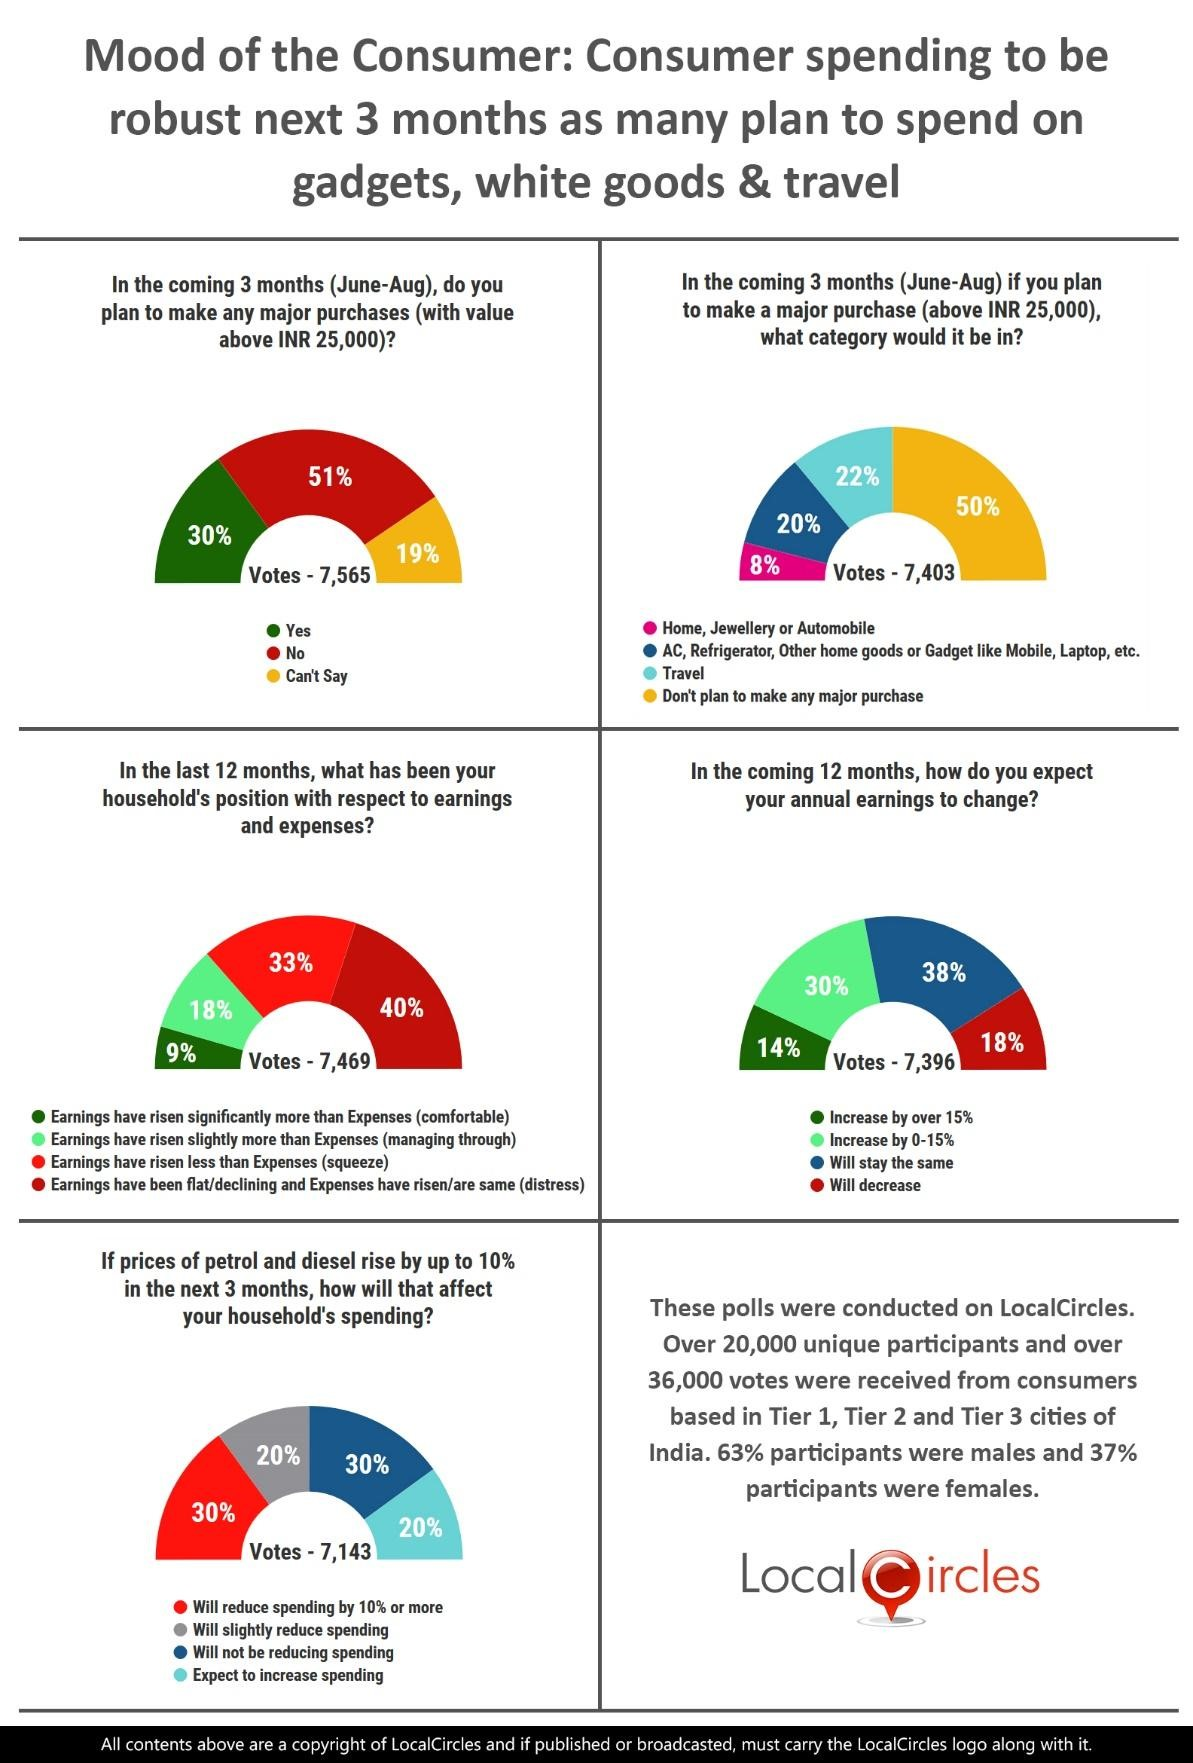 LocalCircles Poll - Mood of the Consumer: Consumer spending to be robust next 3 months as many plan to spend on gadgets, white goods & travel